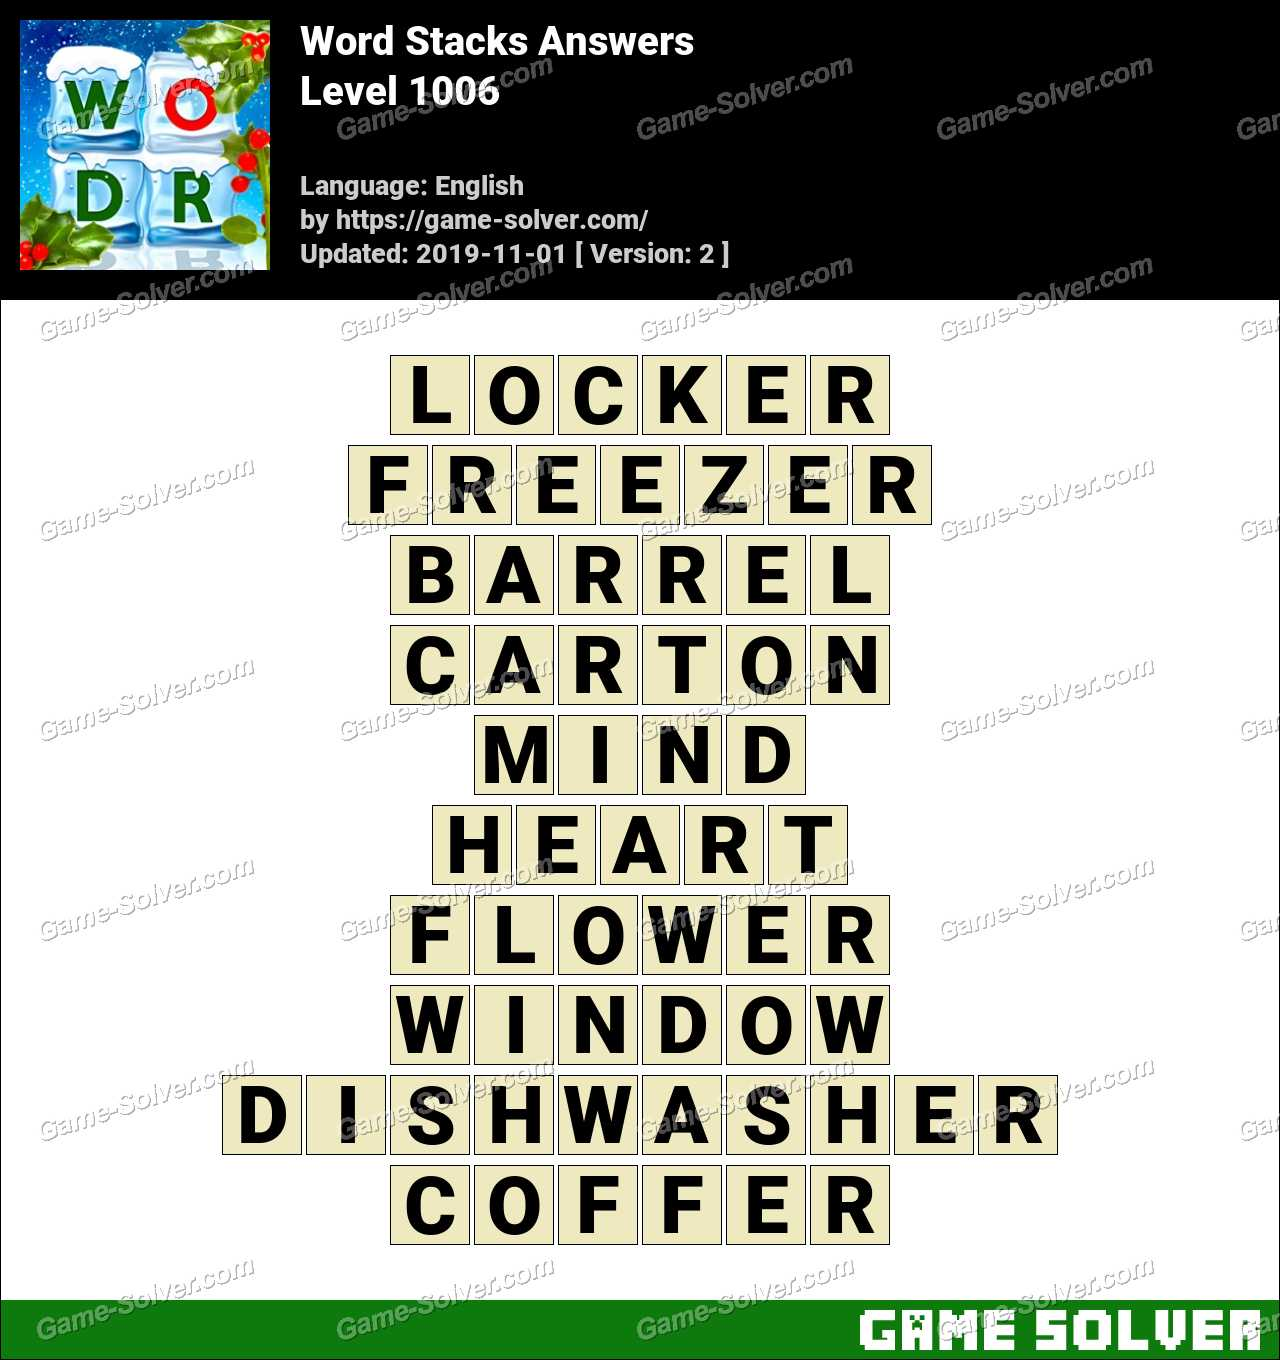 Word Stacks Level 1006 Answers